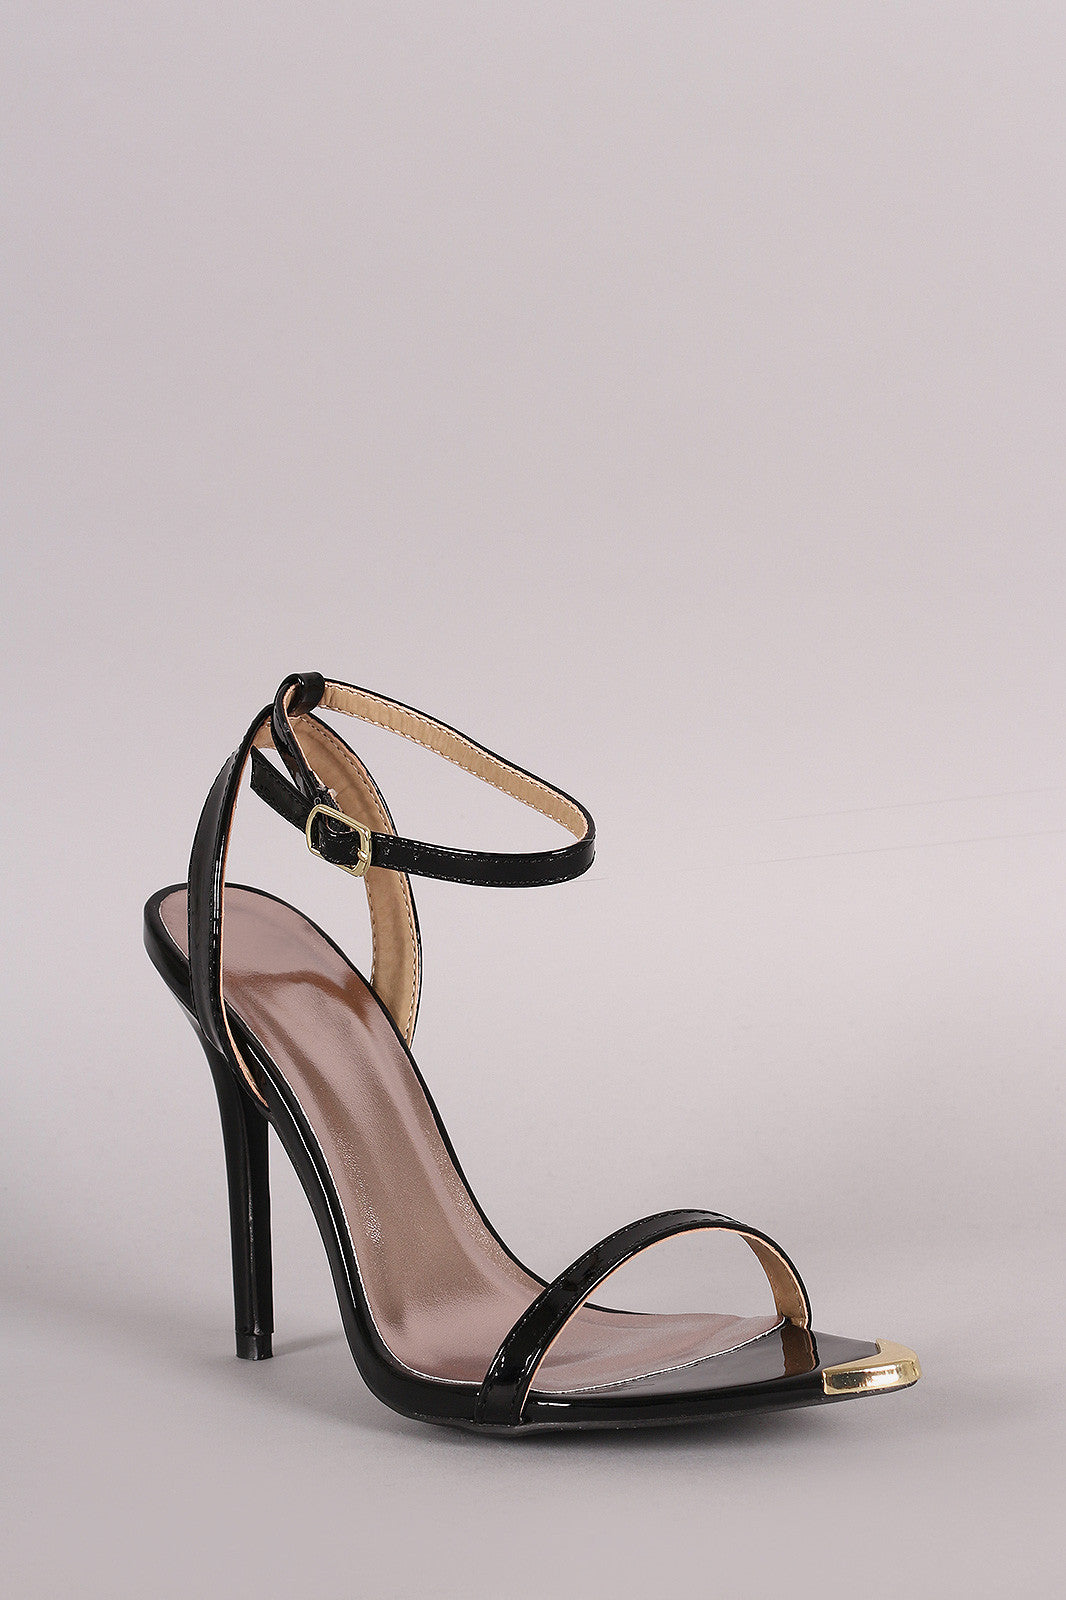 Qupid Patent Gold Tip Ankle Strap Stiletto Heel - Thick 'N' Curvy Shop - 2